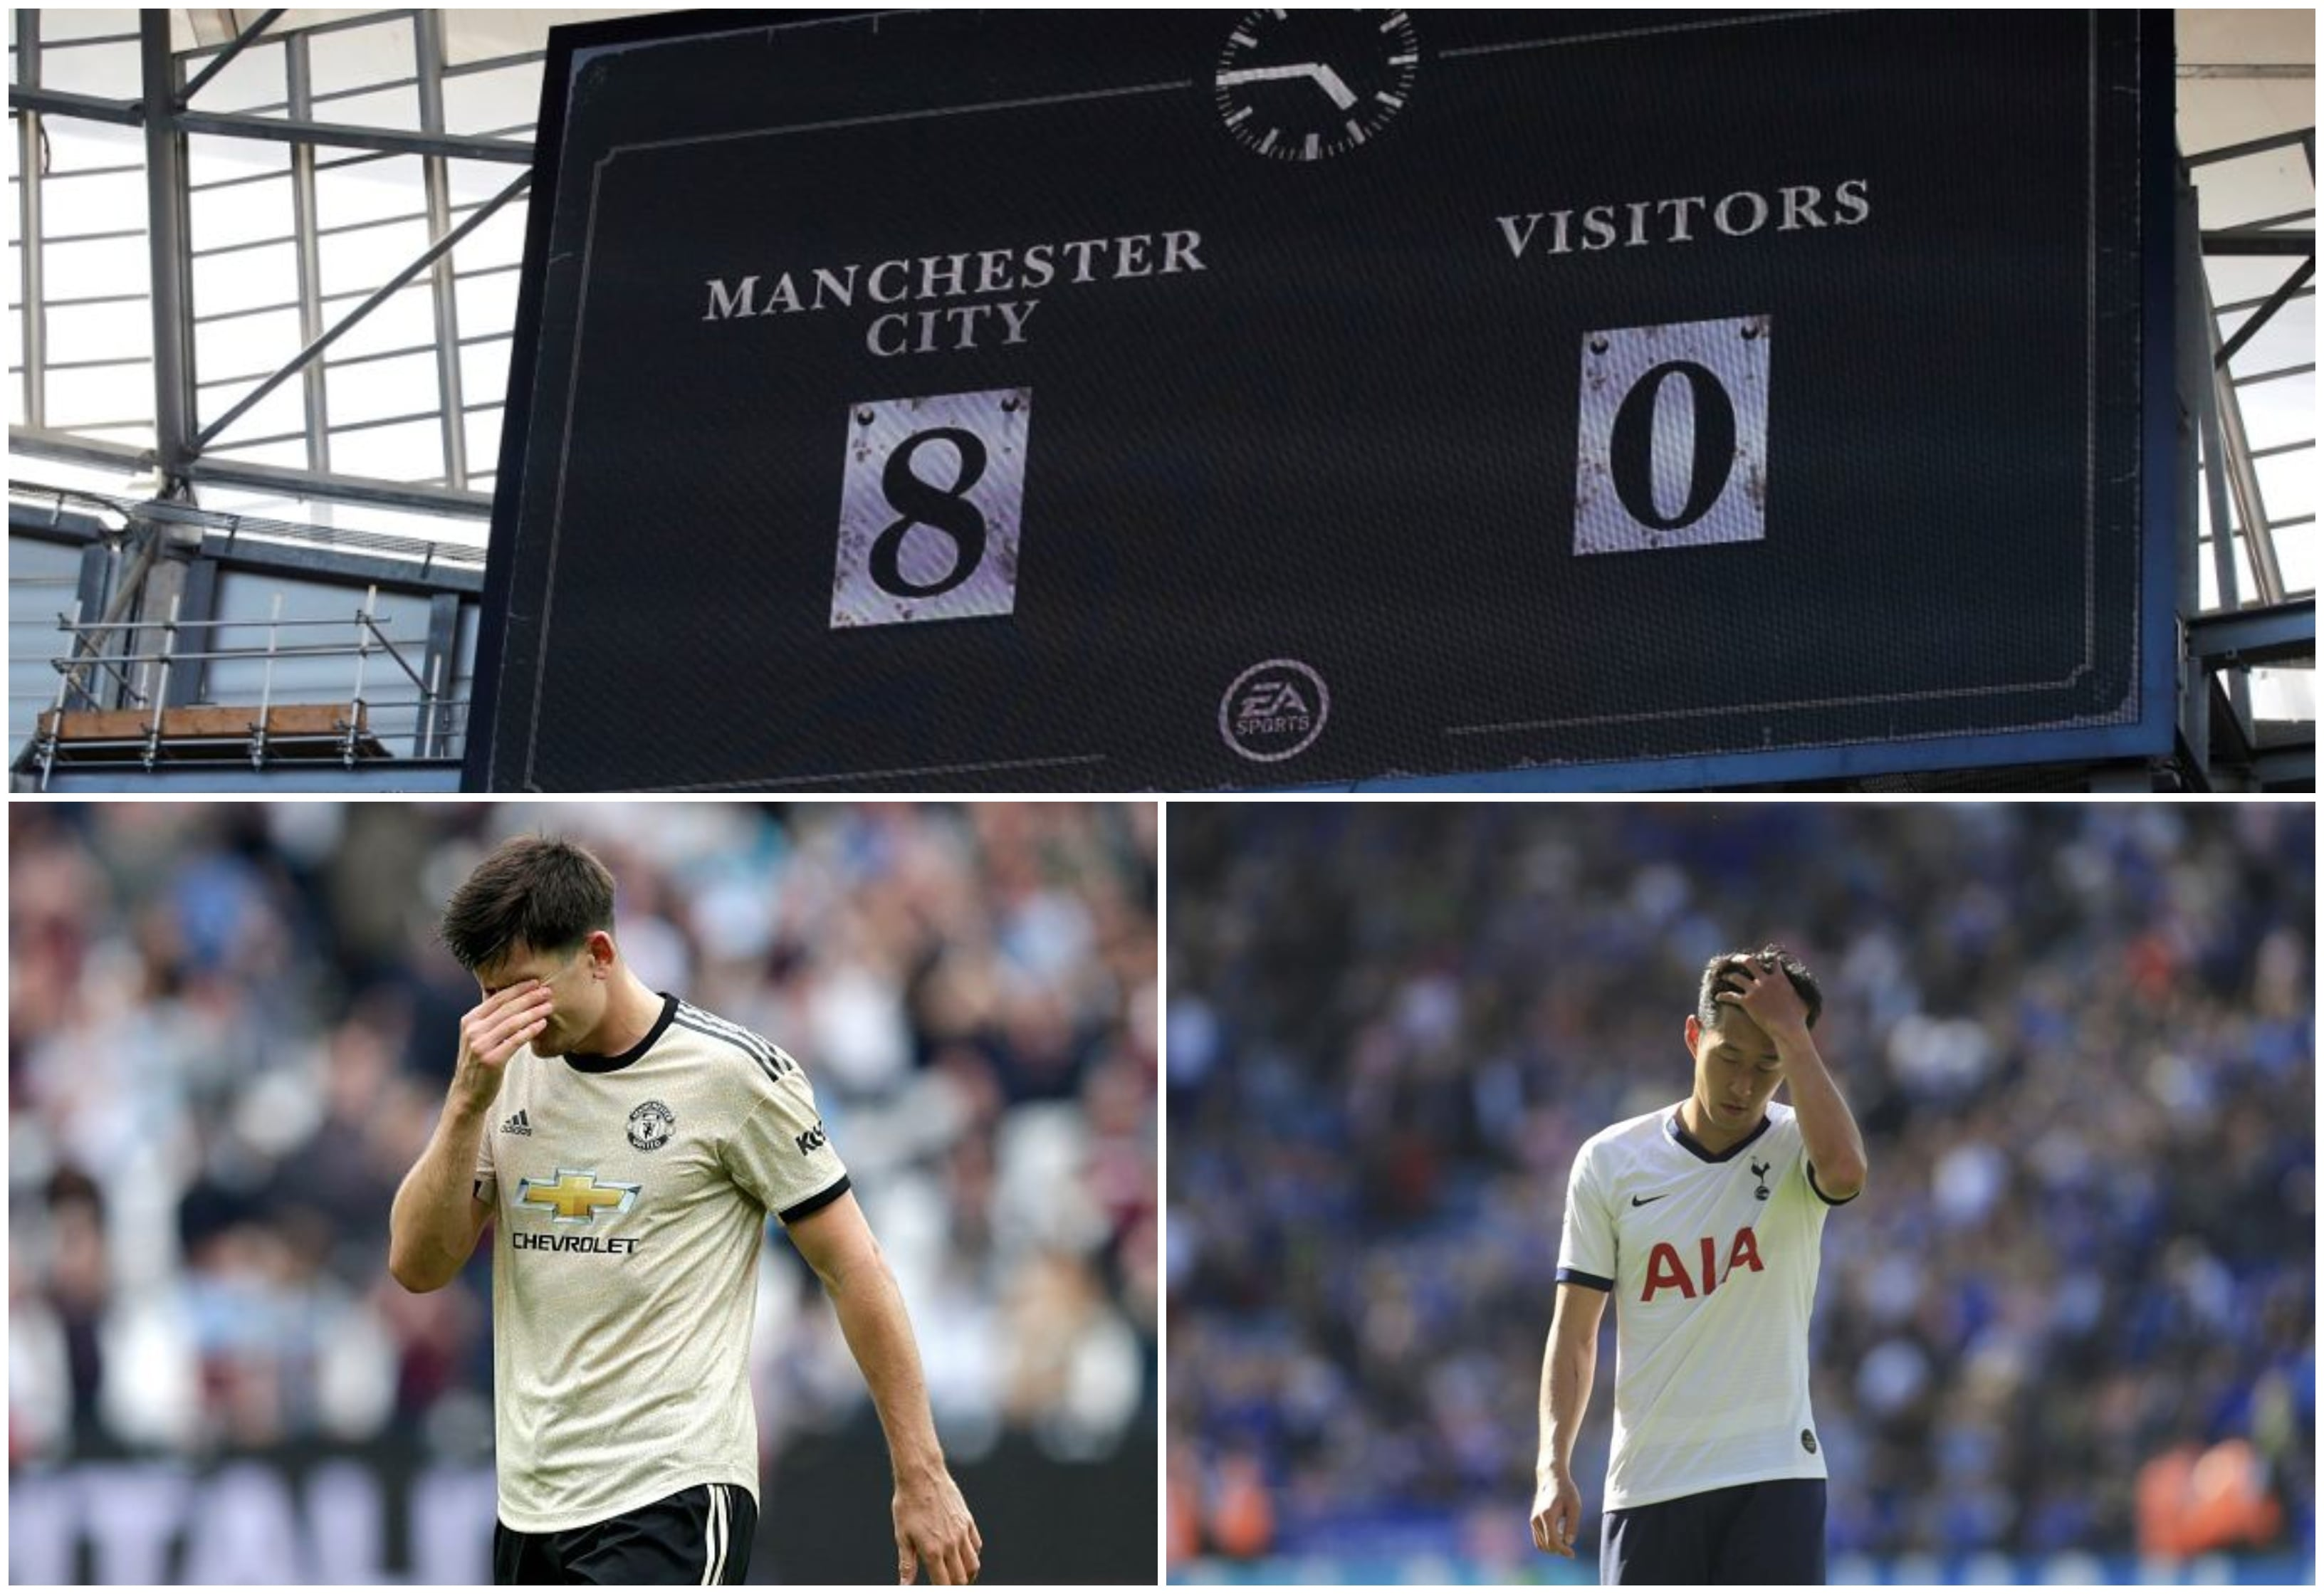 EPL Match Day Six Round-Up from 21.09.2019